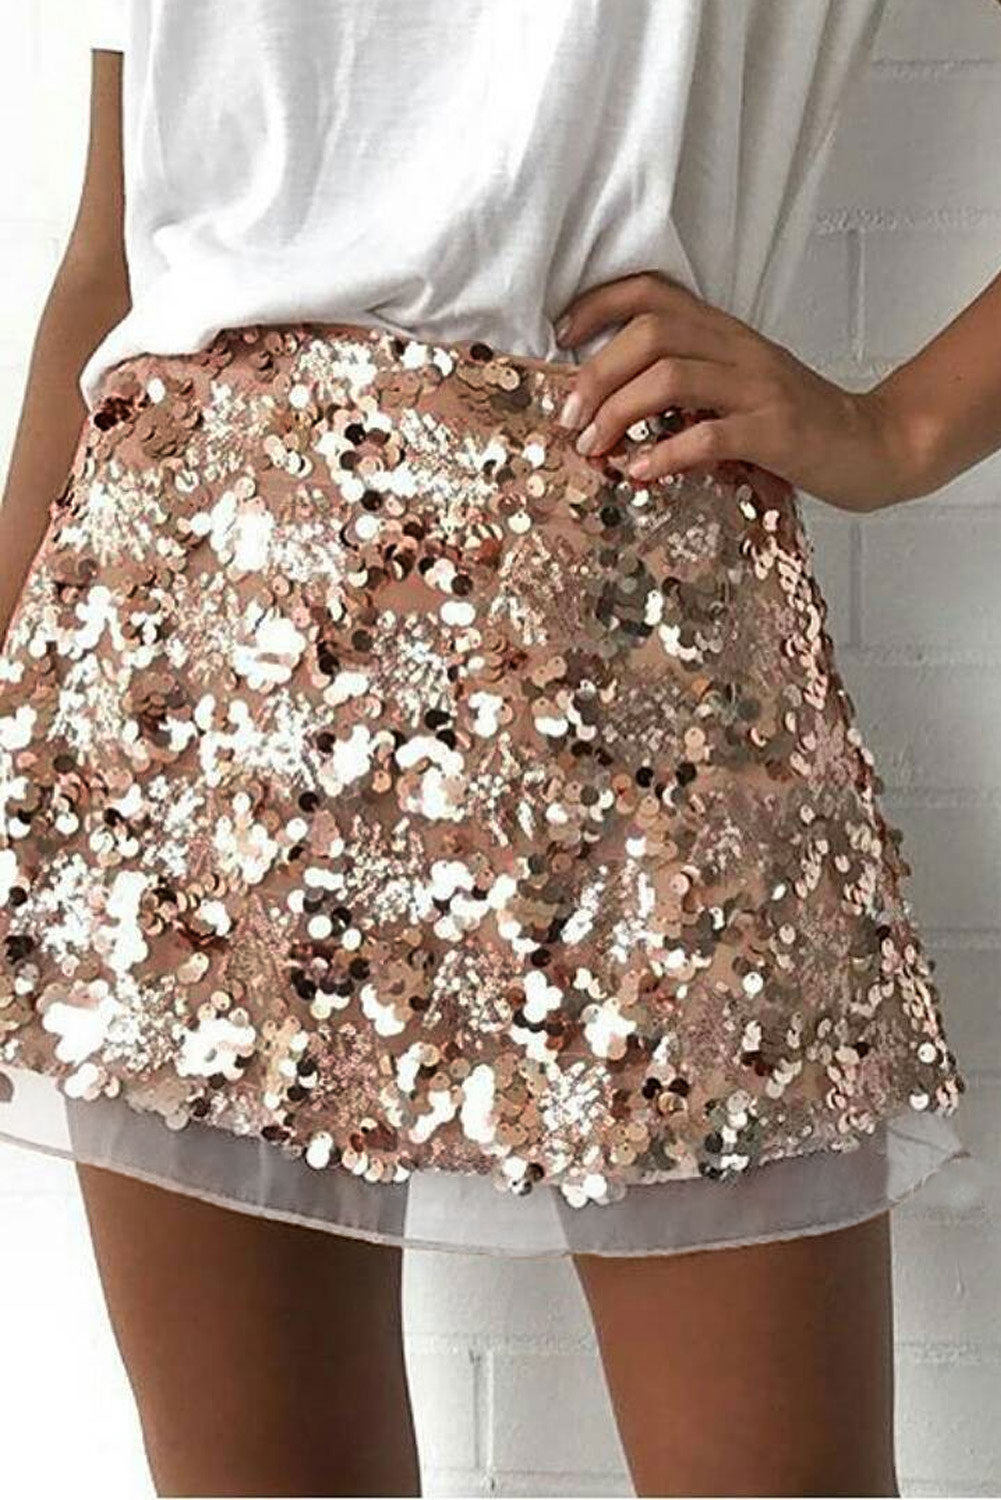 Apricot Bling Bling Shiny Party Skirt